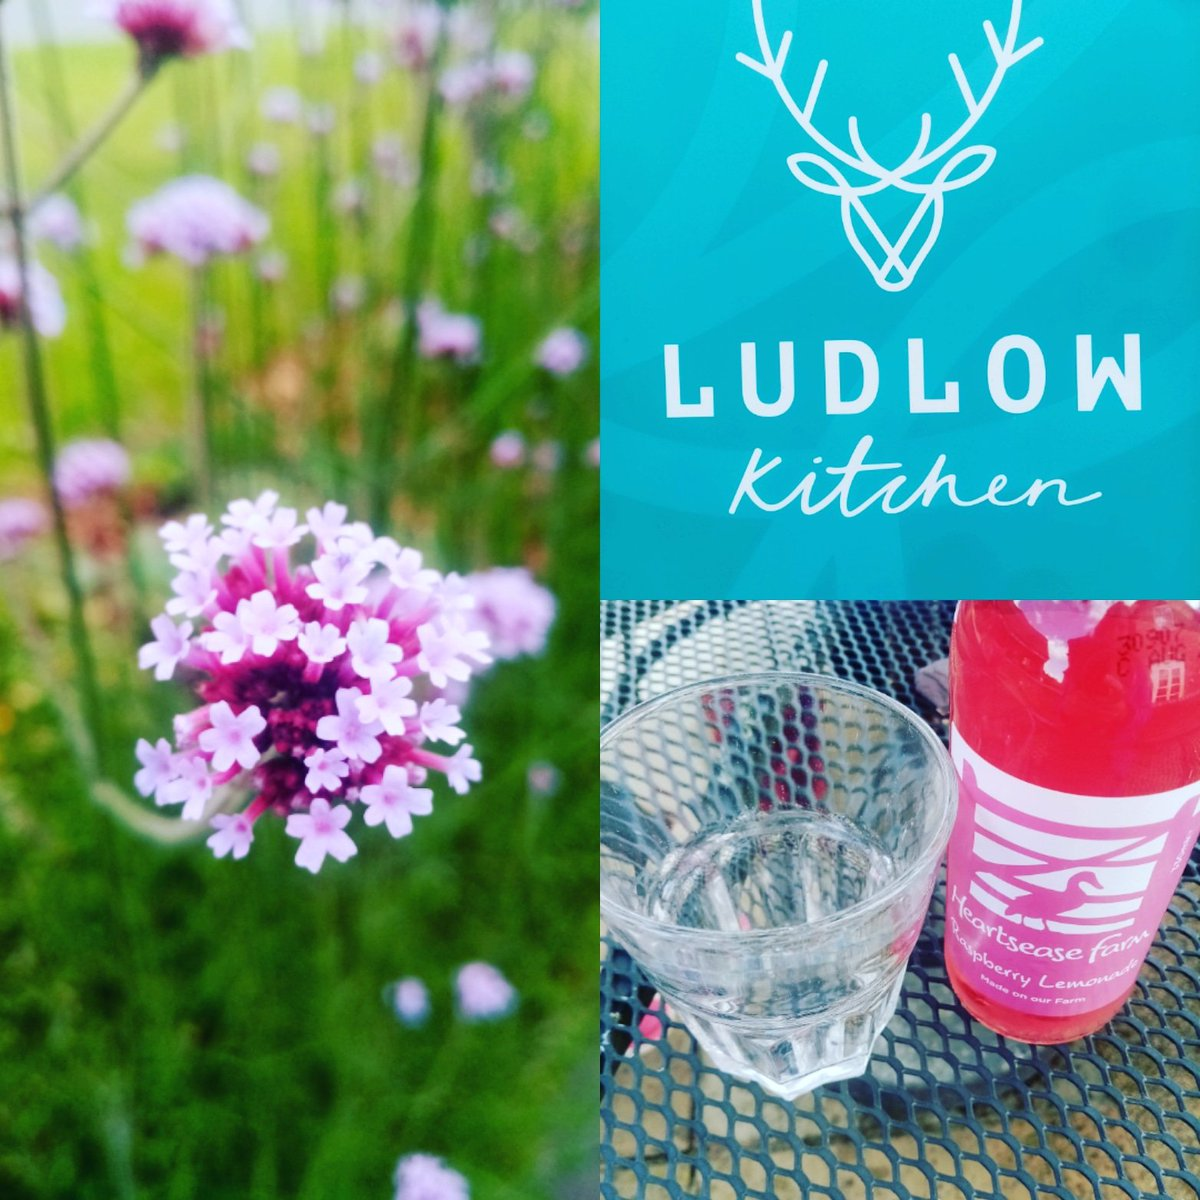 Saturday Happiness! Wonderful visit to @ludlowkitchen cafe today. Lovely coffee & cake, plus epic chips and aioli 😋 #ludlowfood #ludlow #localfood #localproduce #shropshire #Saturday #happiness #coffee #cake #daytrip #dayout #familytime #happinesstrainer #powys #herefordshire